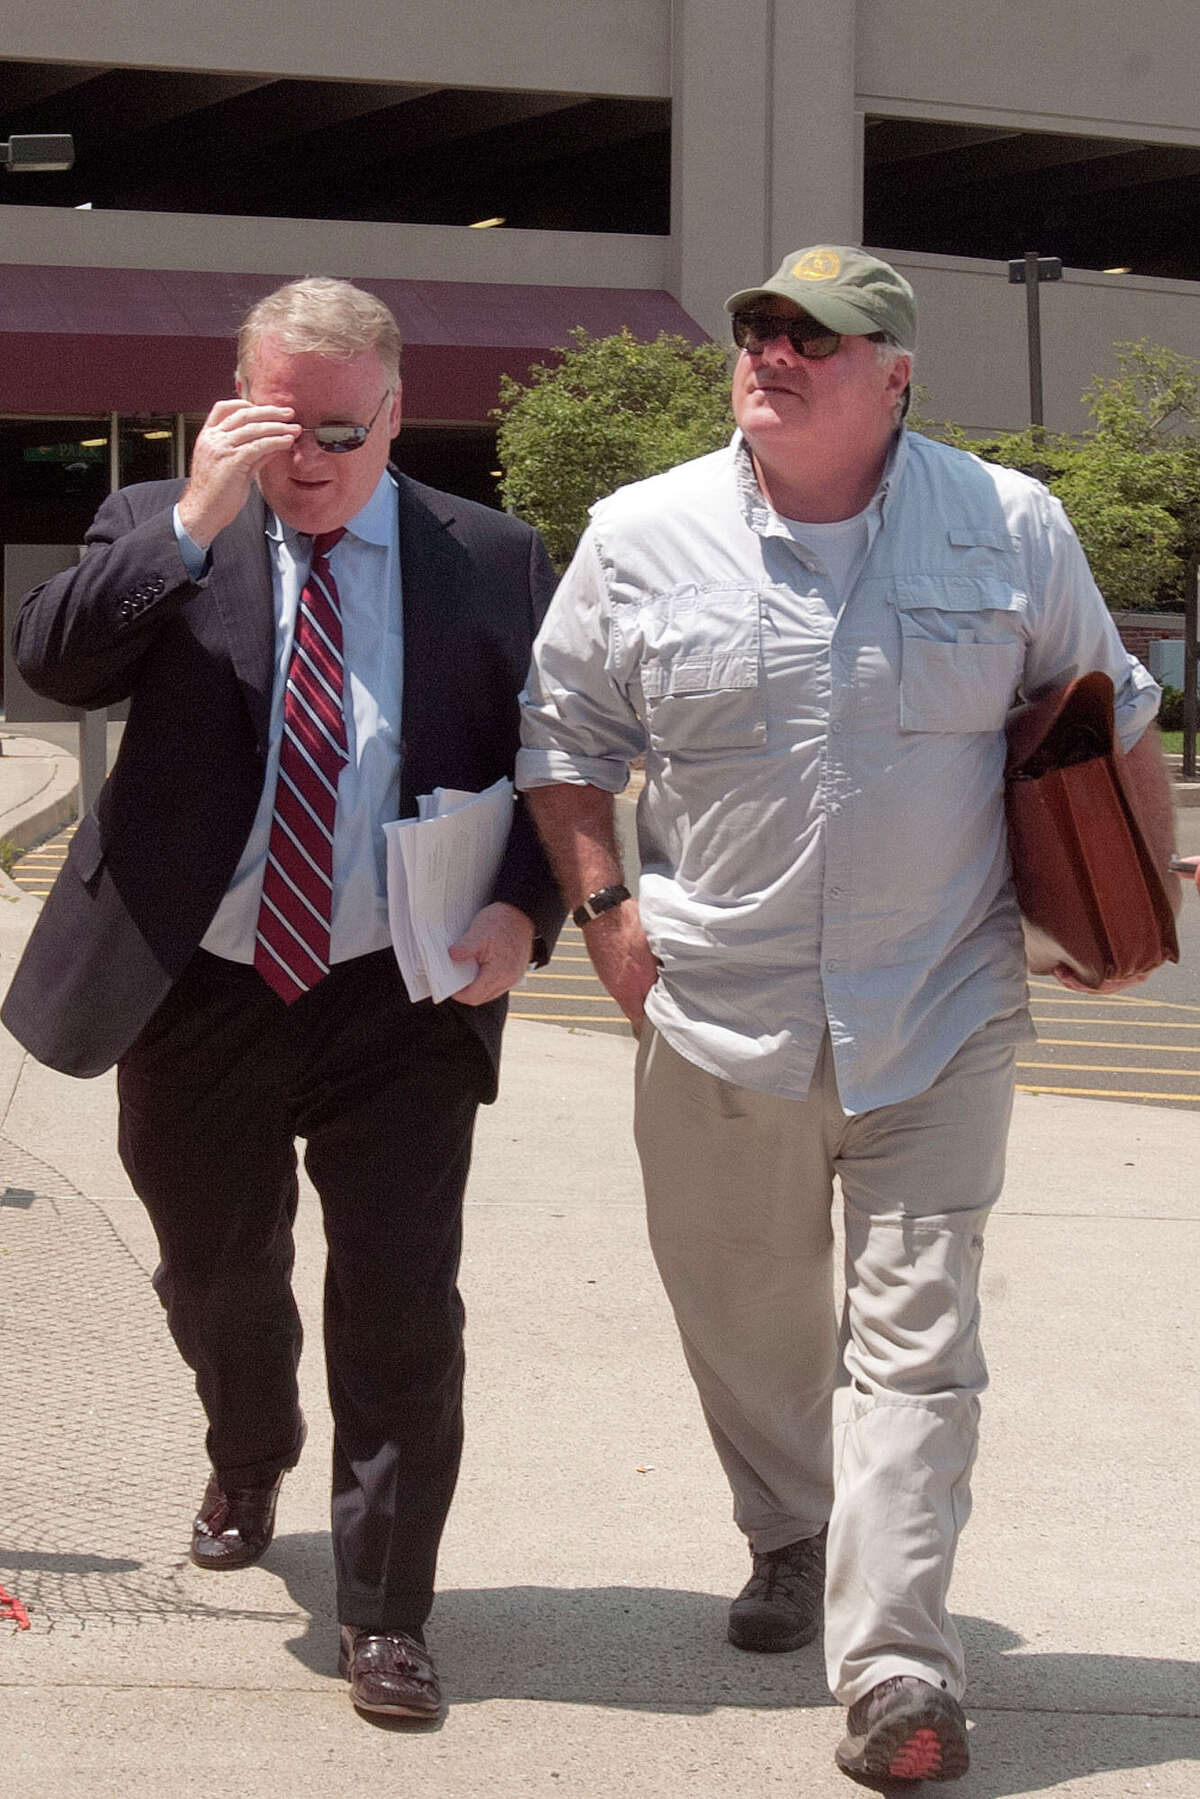 Michael Skakel, right, with his attorney Stephan Seeger, arrives at the Stamford Superior Court in Stamford, Conn., on Tuesday, July 22, 2014. Seeger said, âÄúWe filed some motions, a motion to suppress and a motion for the return of seized property.âÄù